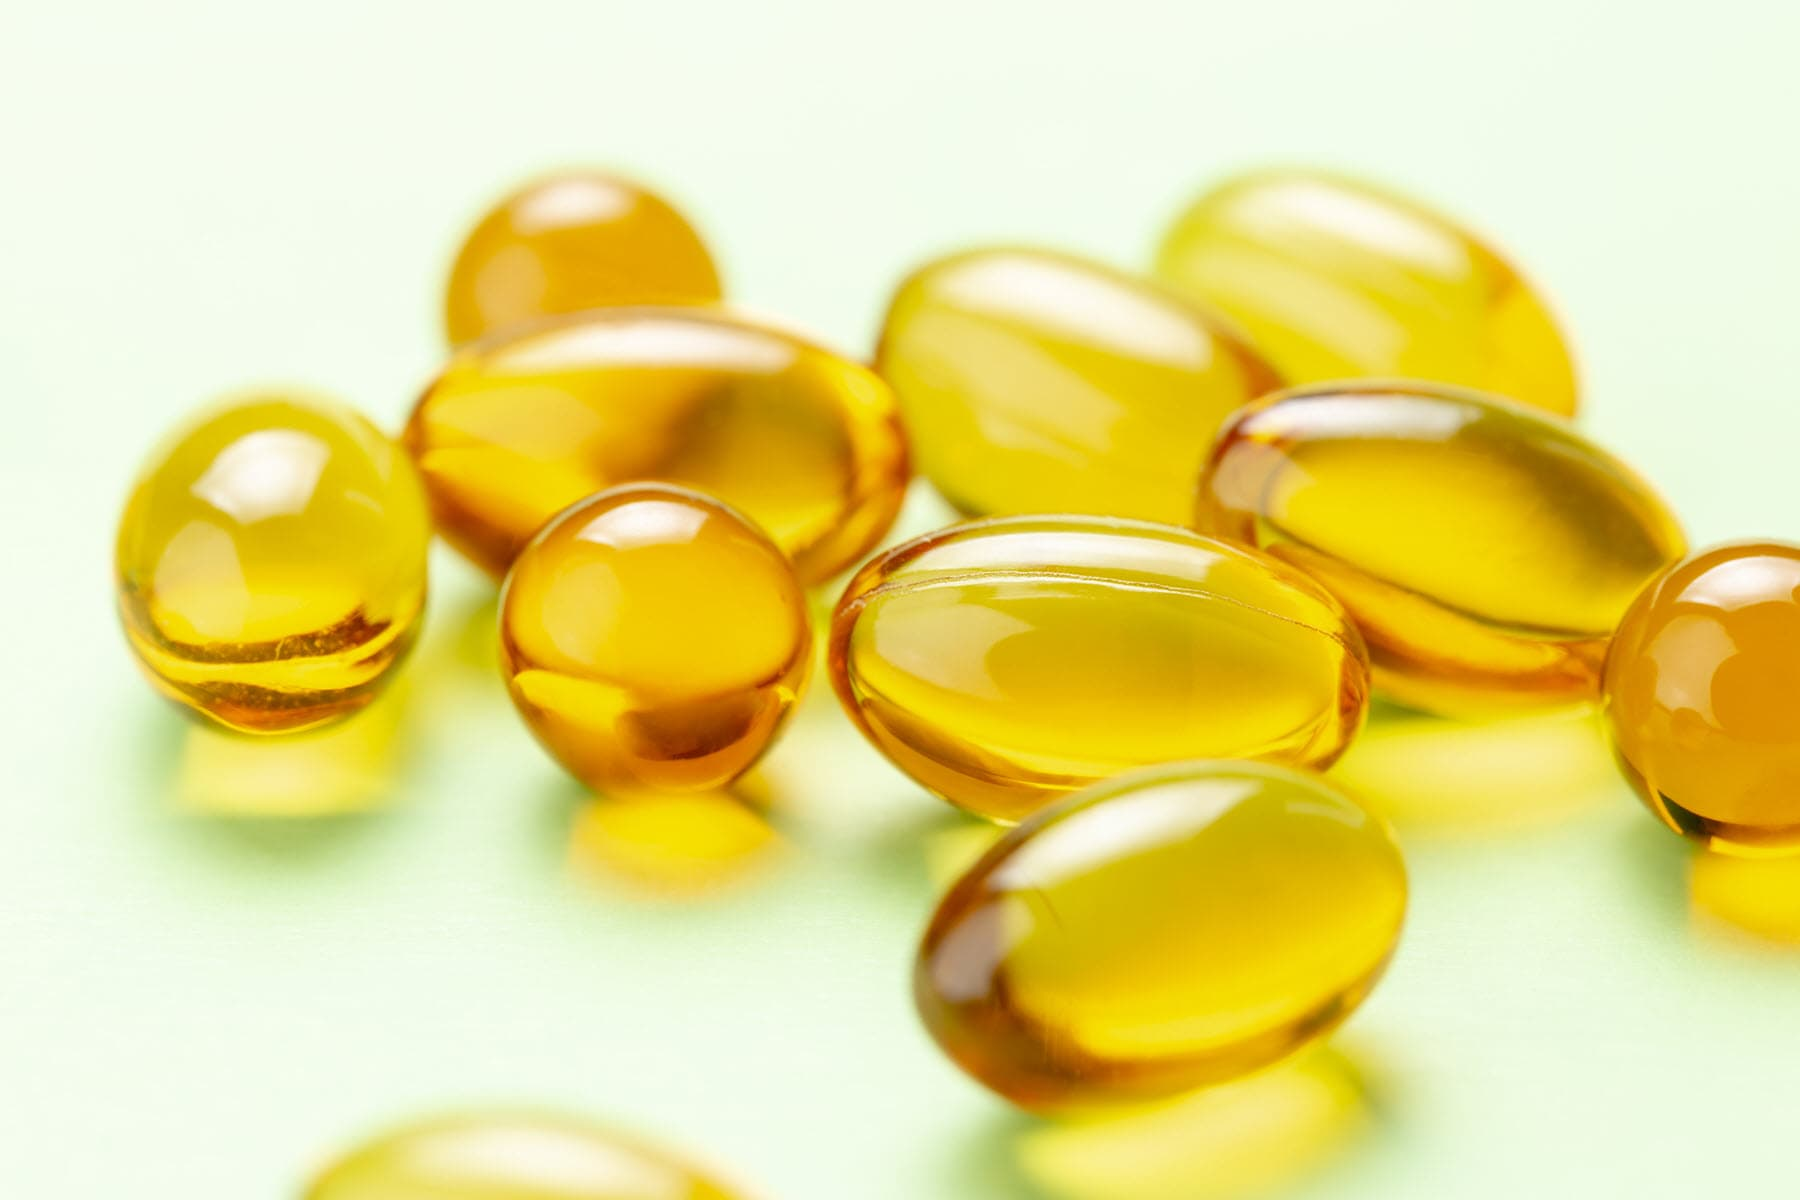 Little Evidence Vitamins Prevent Cancer, Heart Disease